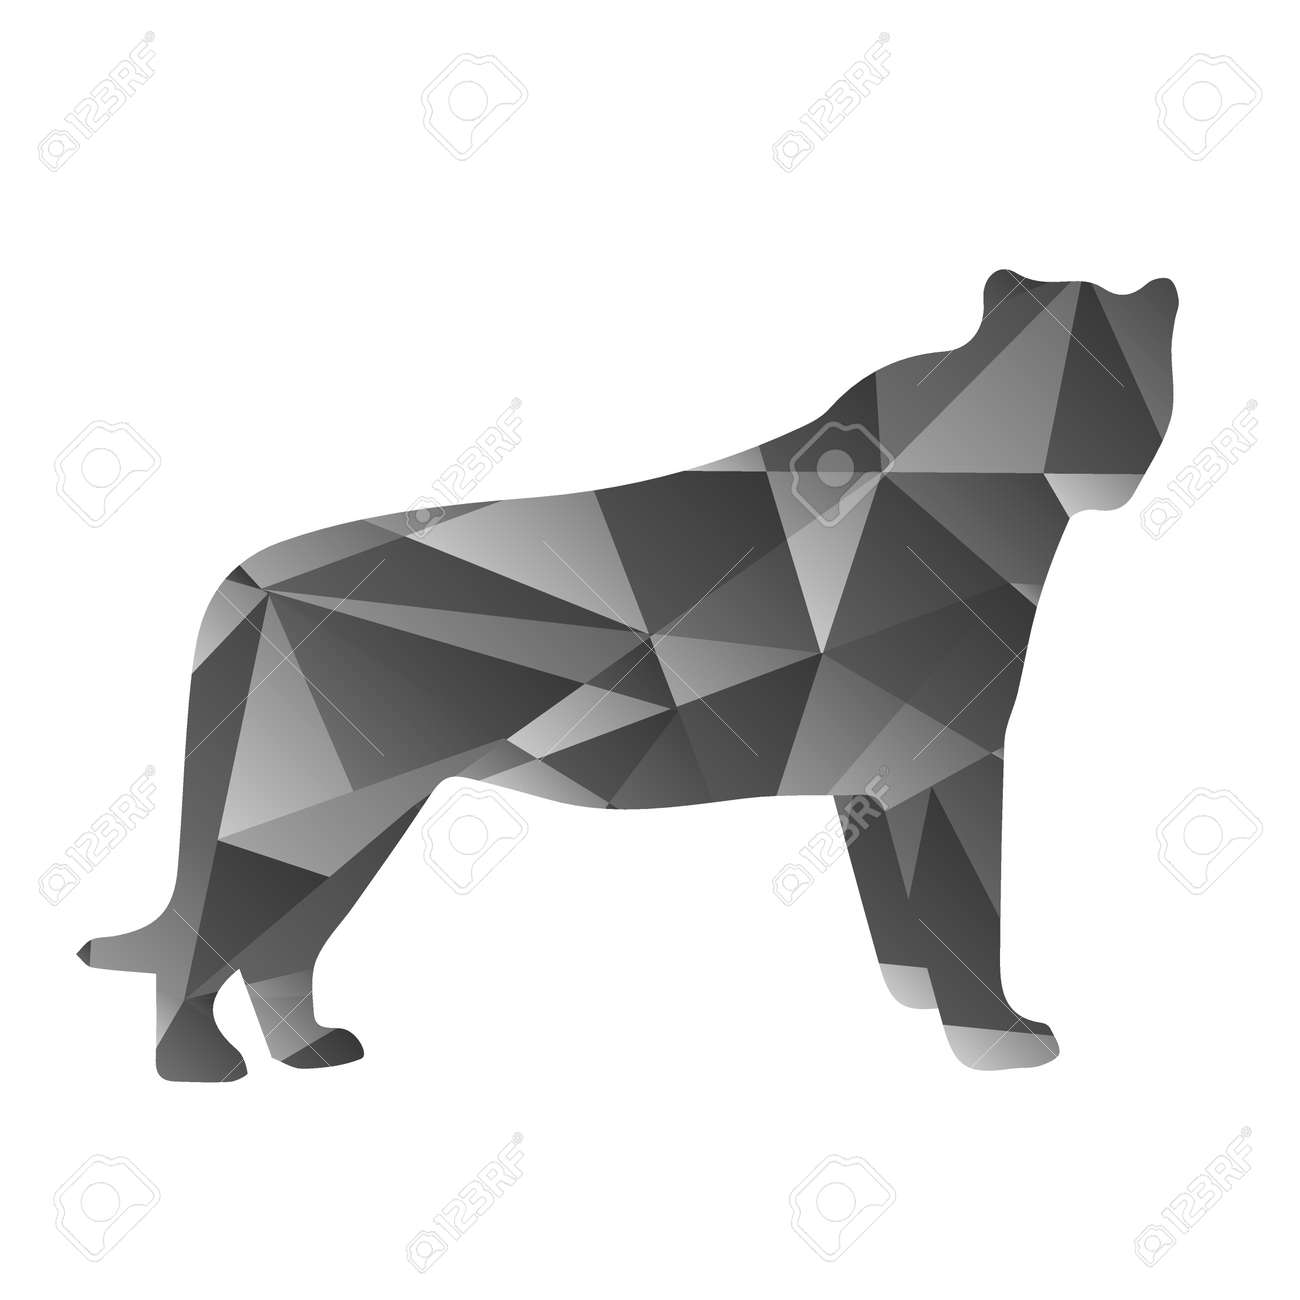 Grey Shapes Abstract Panther Animal Isolated Illustration Stock Vector